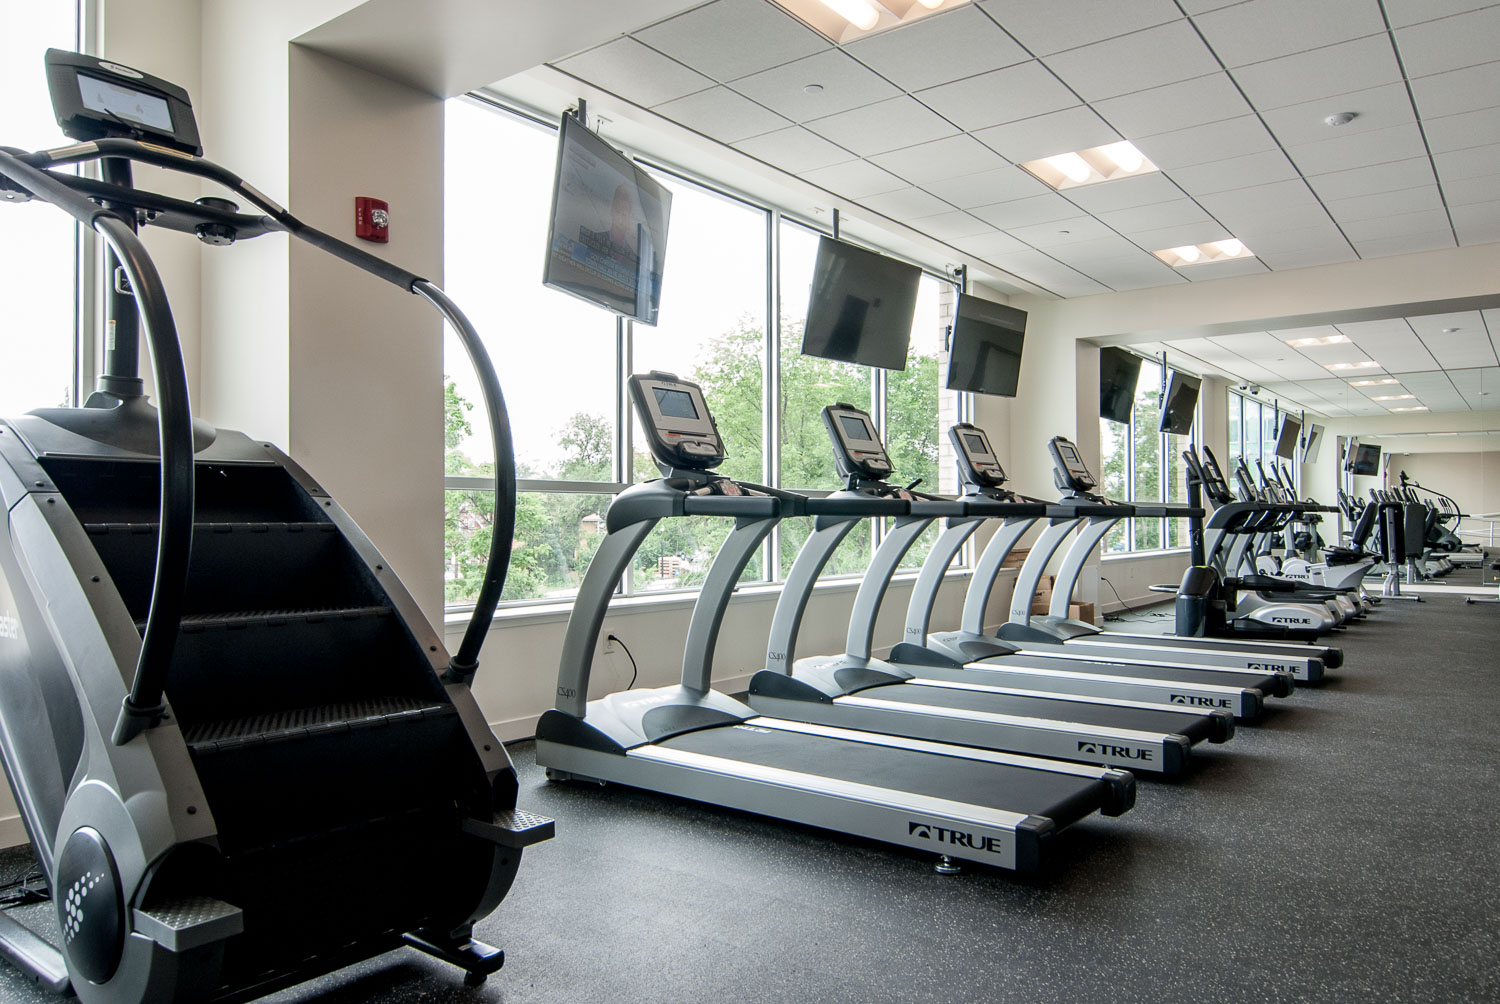 Fitness center at Innova Apartments in University Circle Cleveland